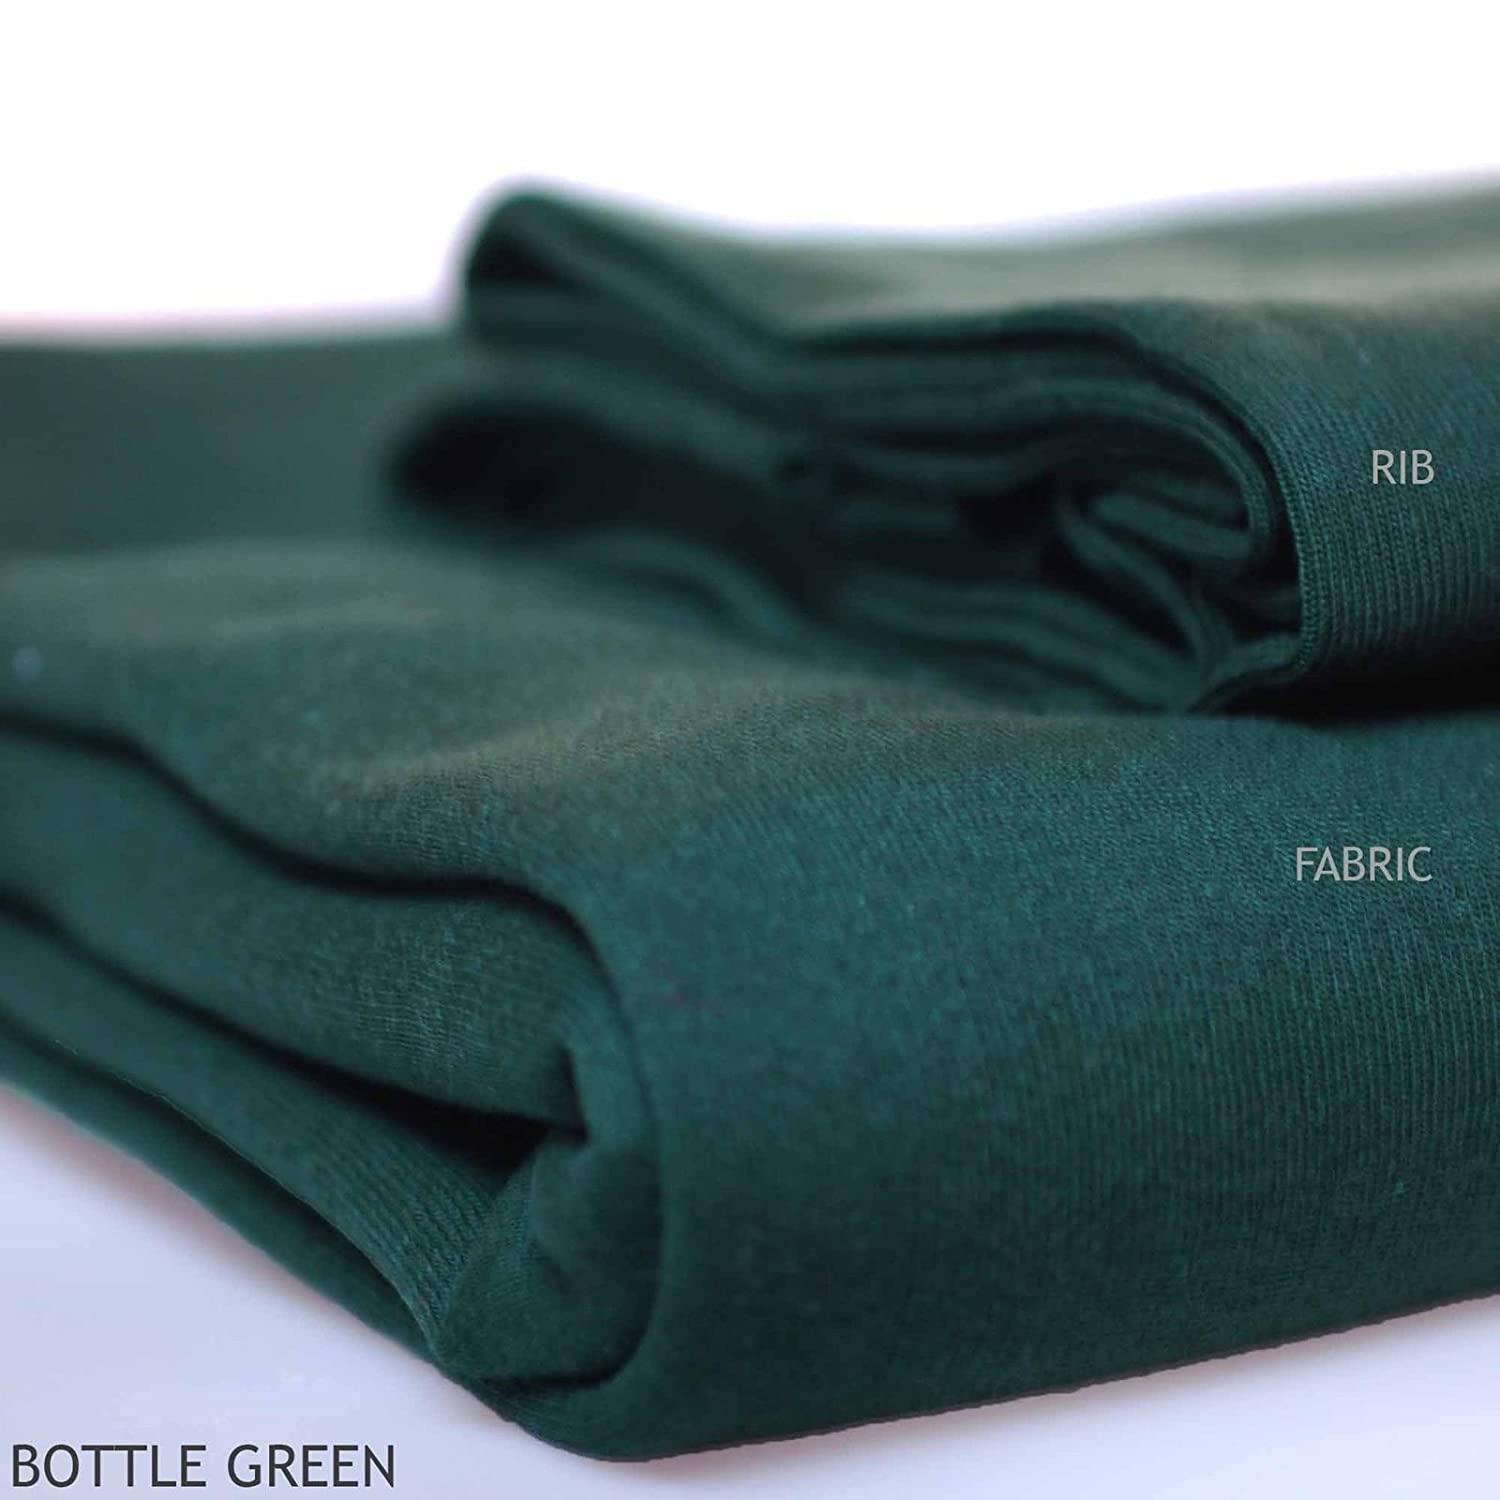 Sweatshirt fabrics; Fabric for Hoddies and Dressmaking. Now 13 colours of this Sweat Shirt Jersey Fabric. European Schools Approved and Tested Brushed back Hoddy Fabric. Great performance fabric, natural stretch. Cotton Acrylic Poly Mix Content; 200cms (1